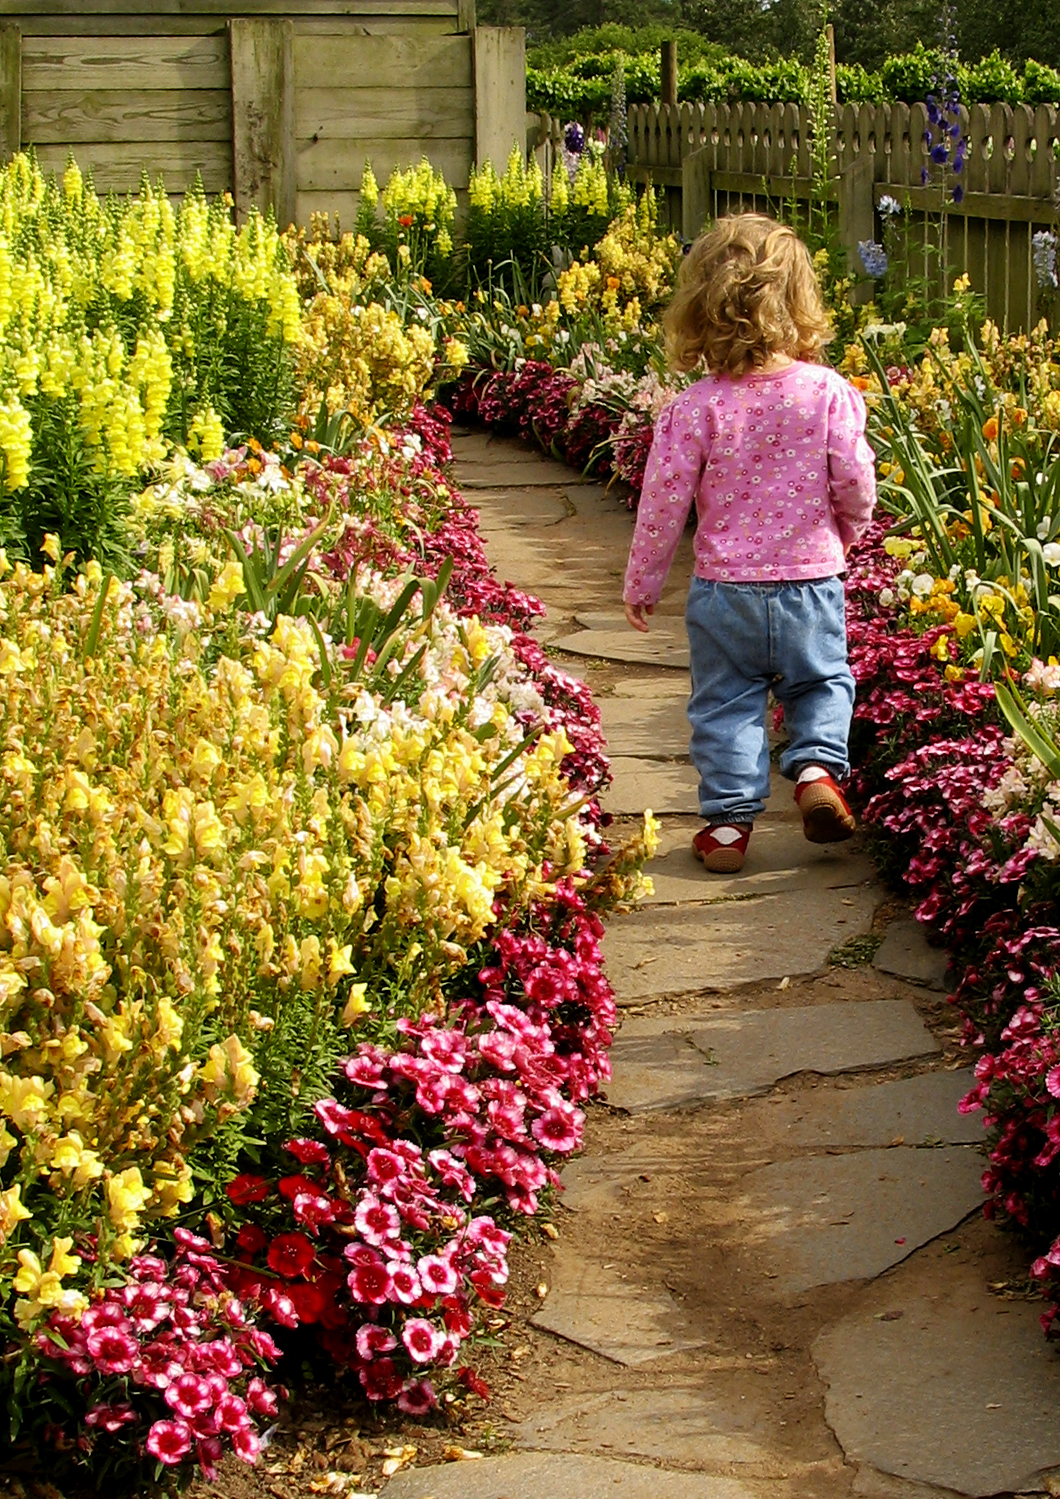 Child walking through flowered paved path